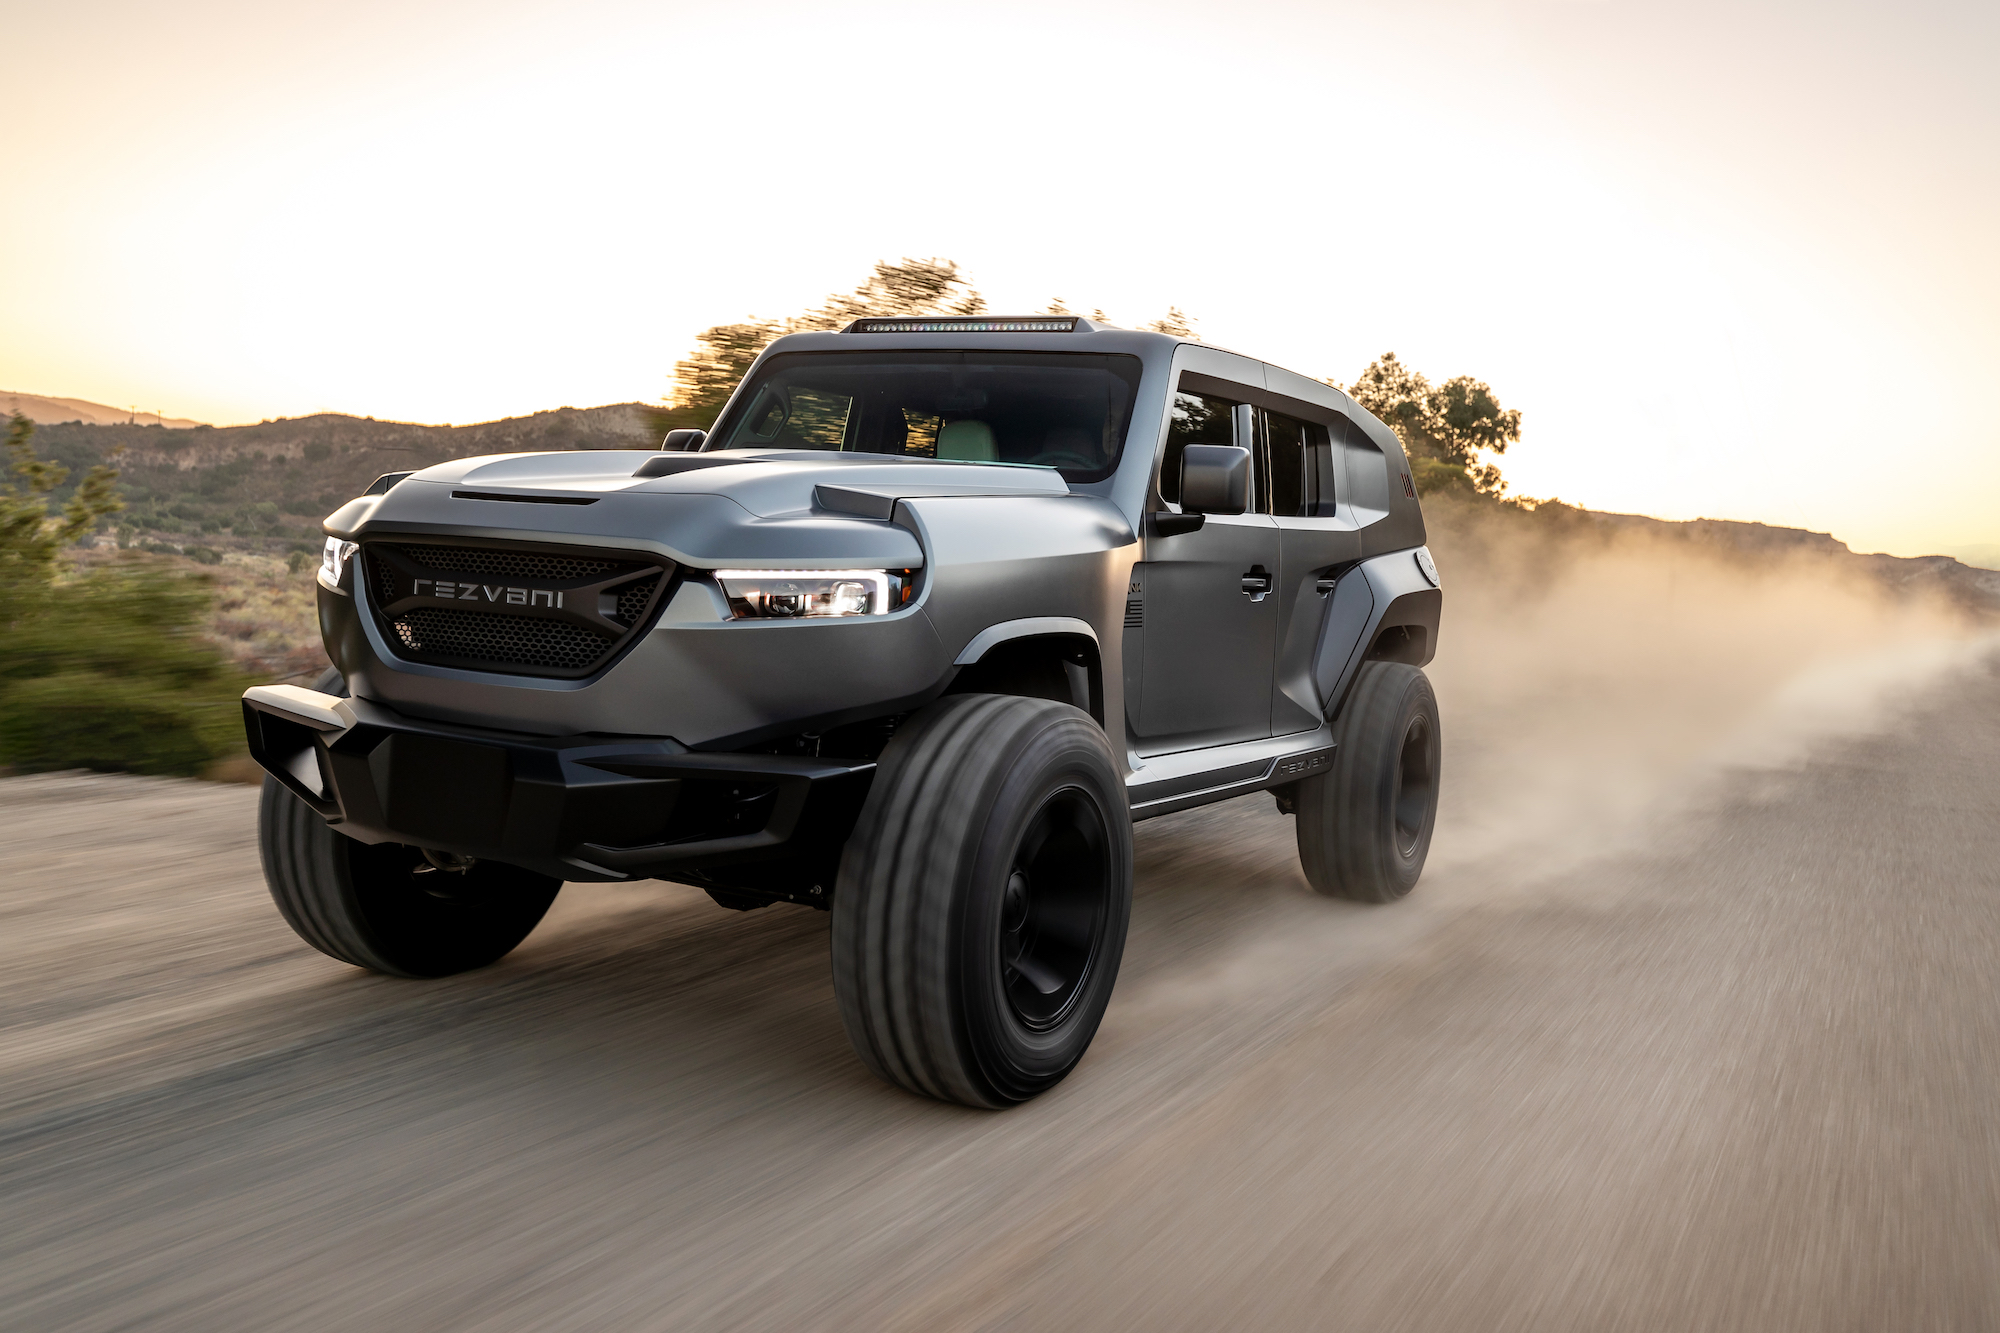 Discover The Tank 2020 From Rezvani The Armored Suv With 1000 Hp The Milliardaire